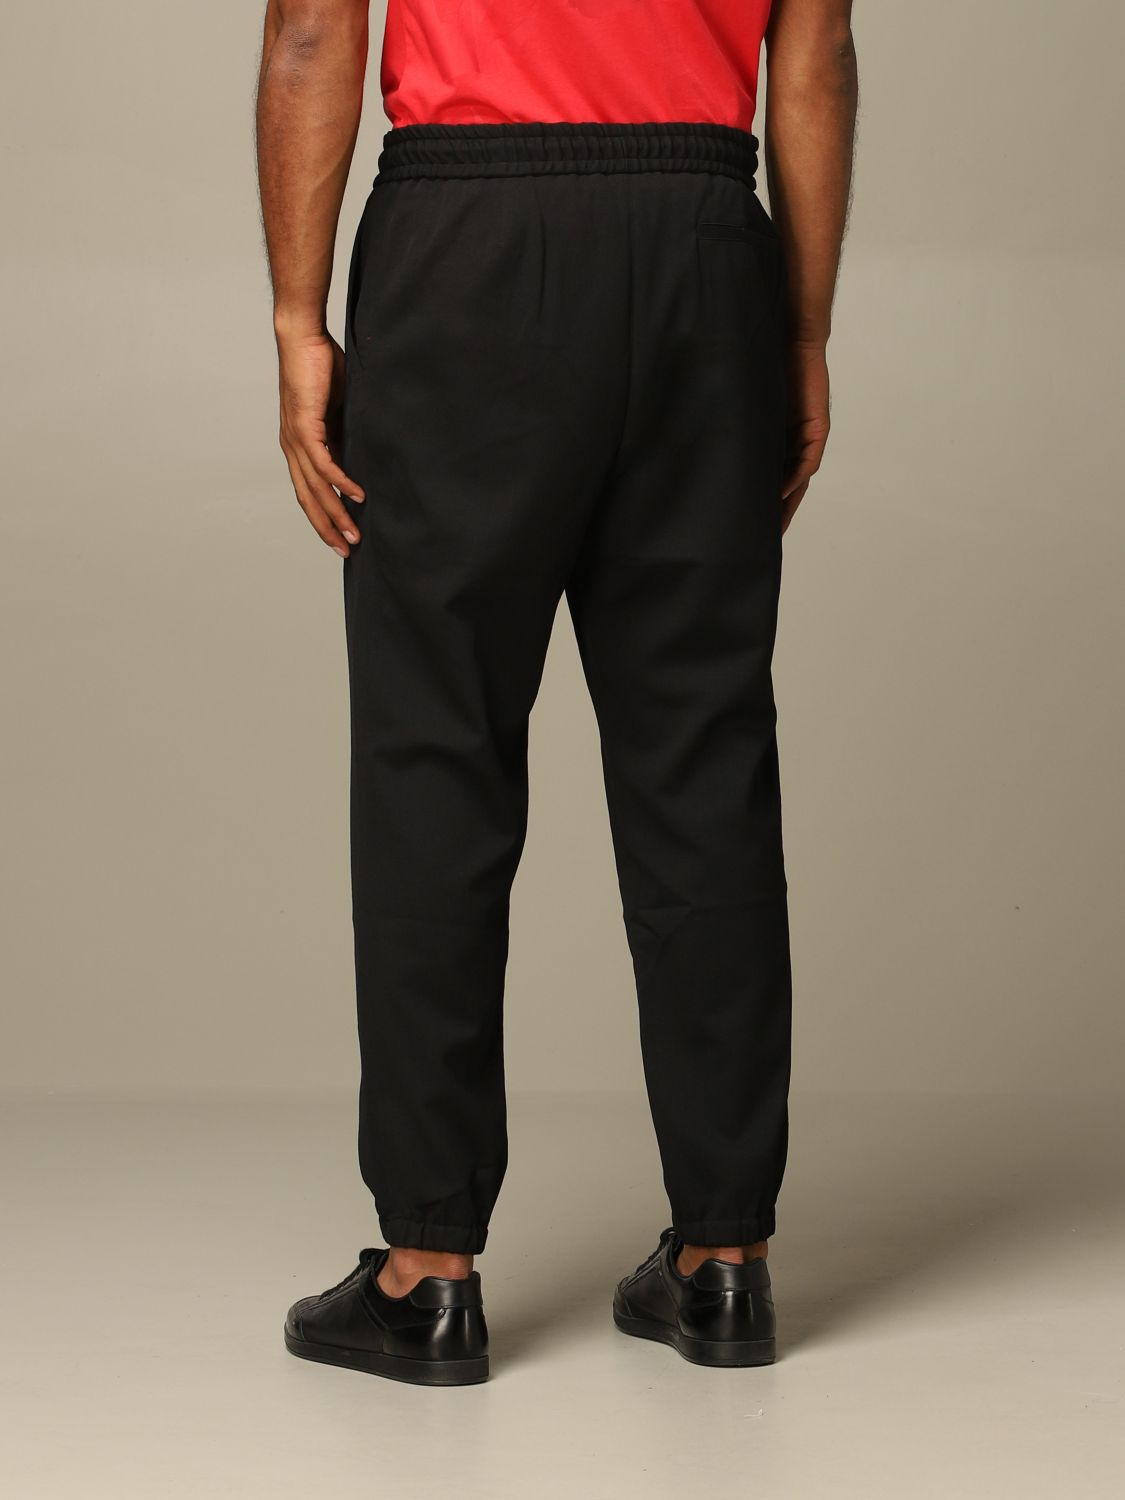 Pants Mcq Mcqueen: Mcq Mcqueen jogging trousers black 2